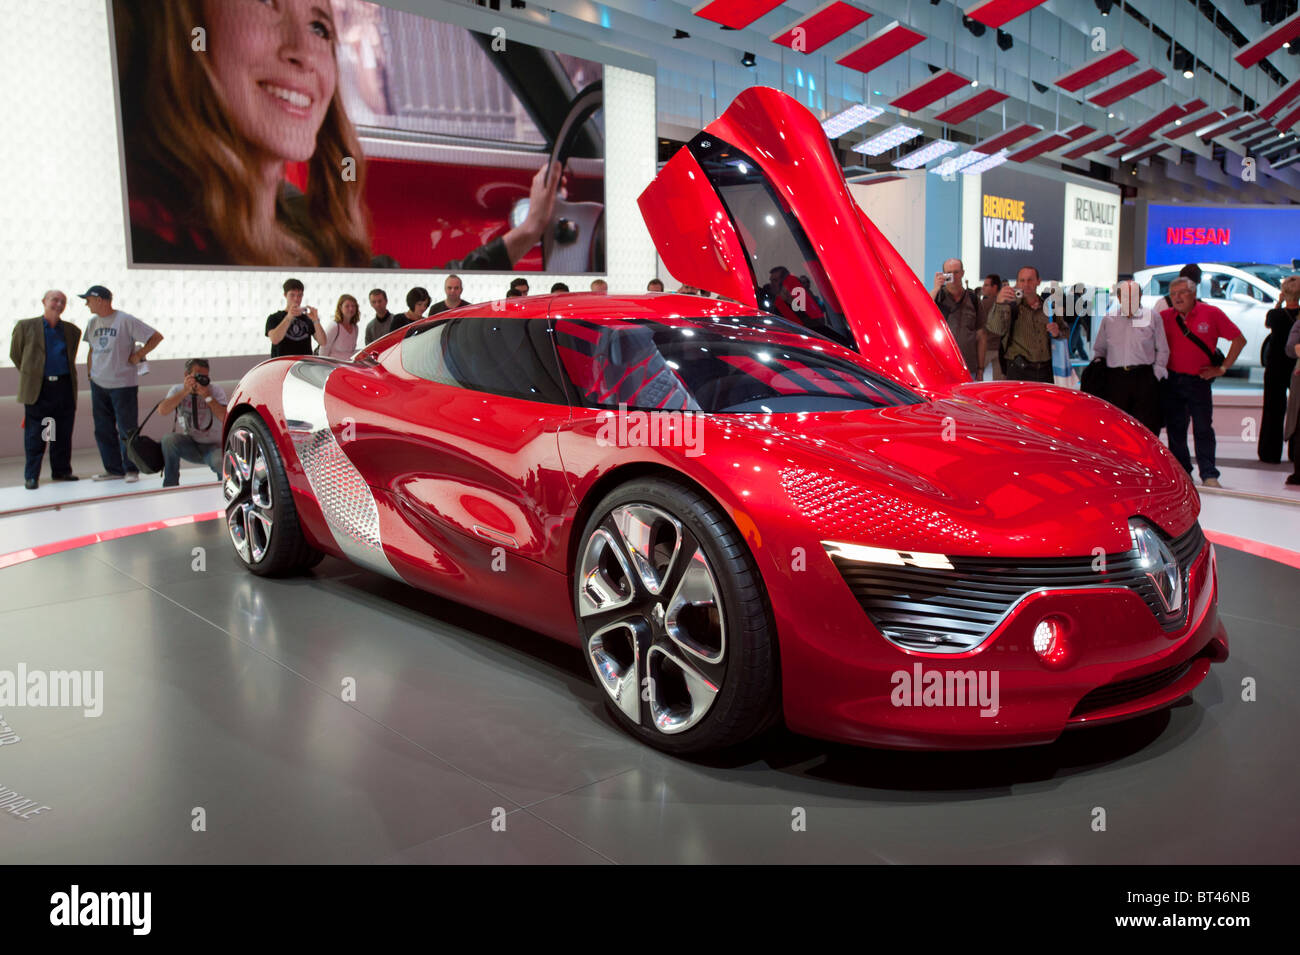 New electric concept Renault Dezir sports car on display at Paris Motor Show 2010 - Stock Image